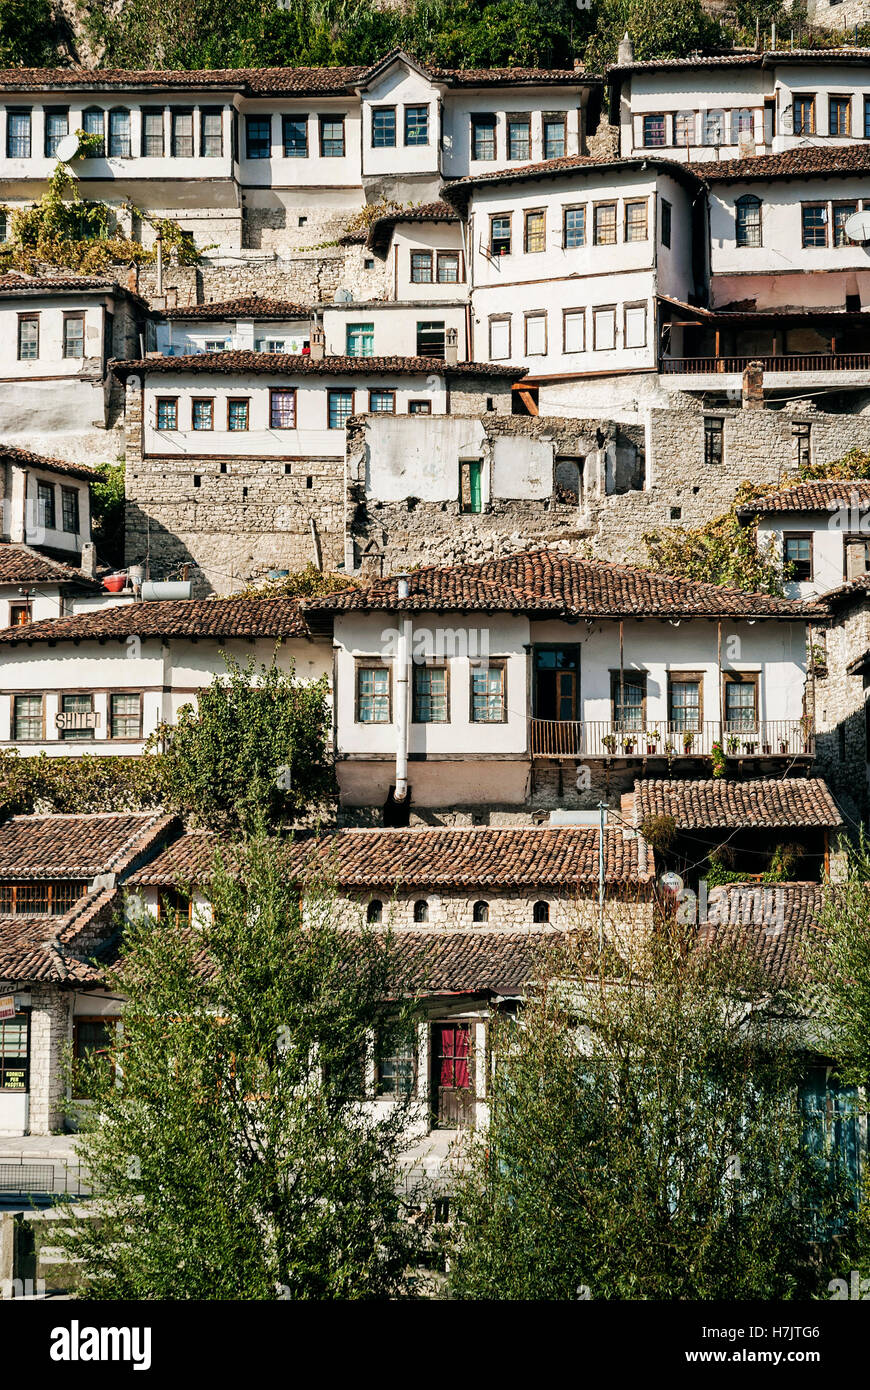 traditional balkan houses in historic old town of berat albania - Stock Image